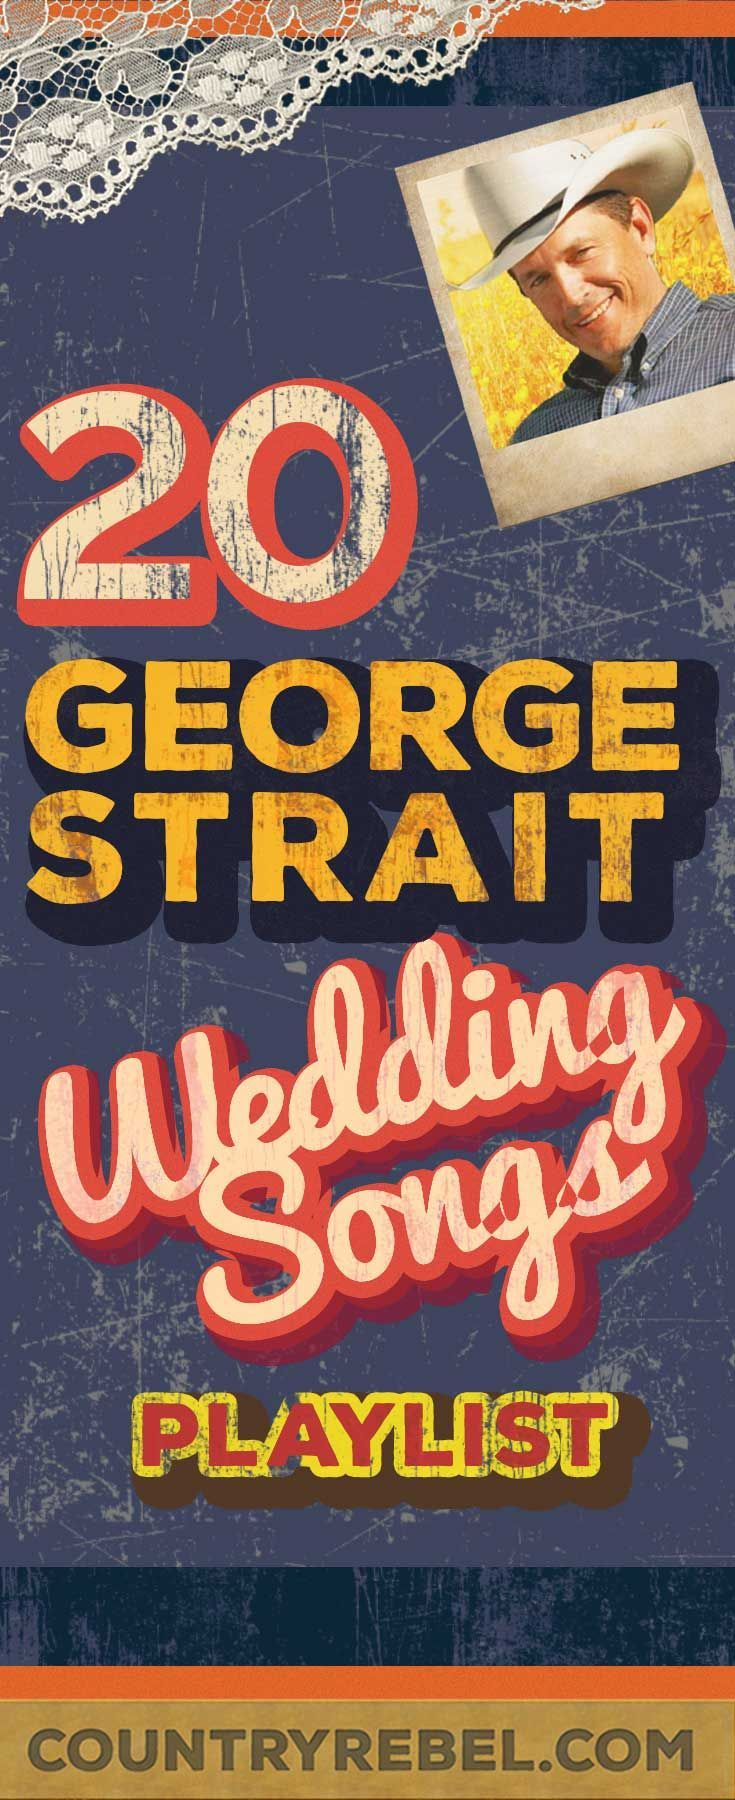 20 Swoon Worthy George Strait Wedding Songs Spotify Playlist Watch Country Wedding Songs Wedding Songs Love Songs Playlist